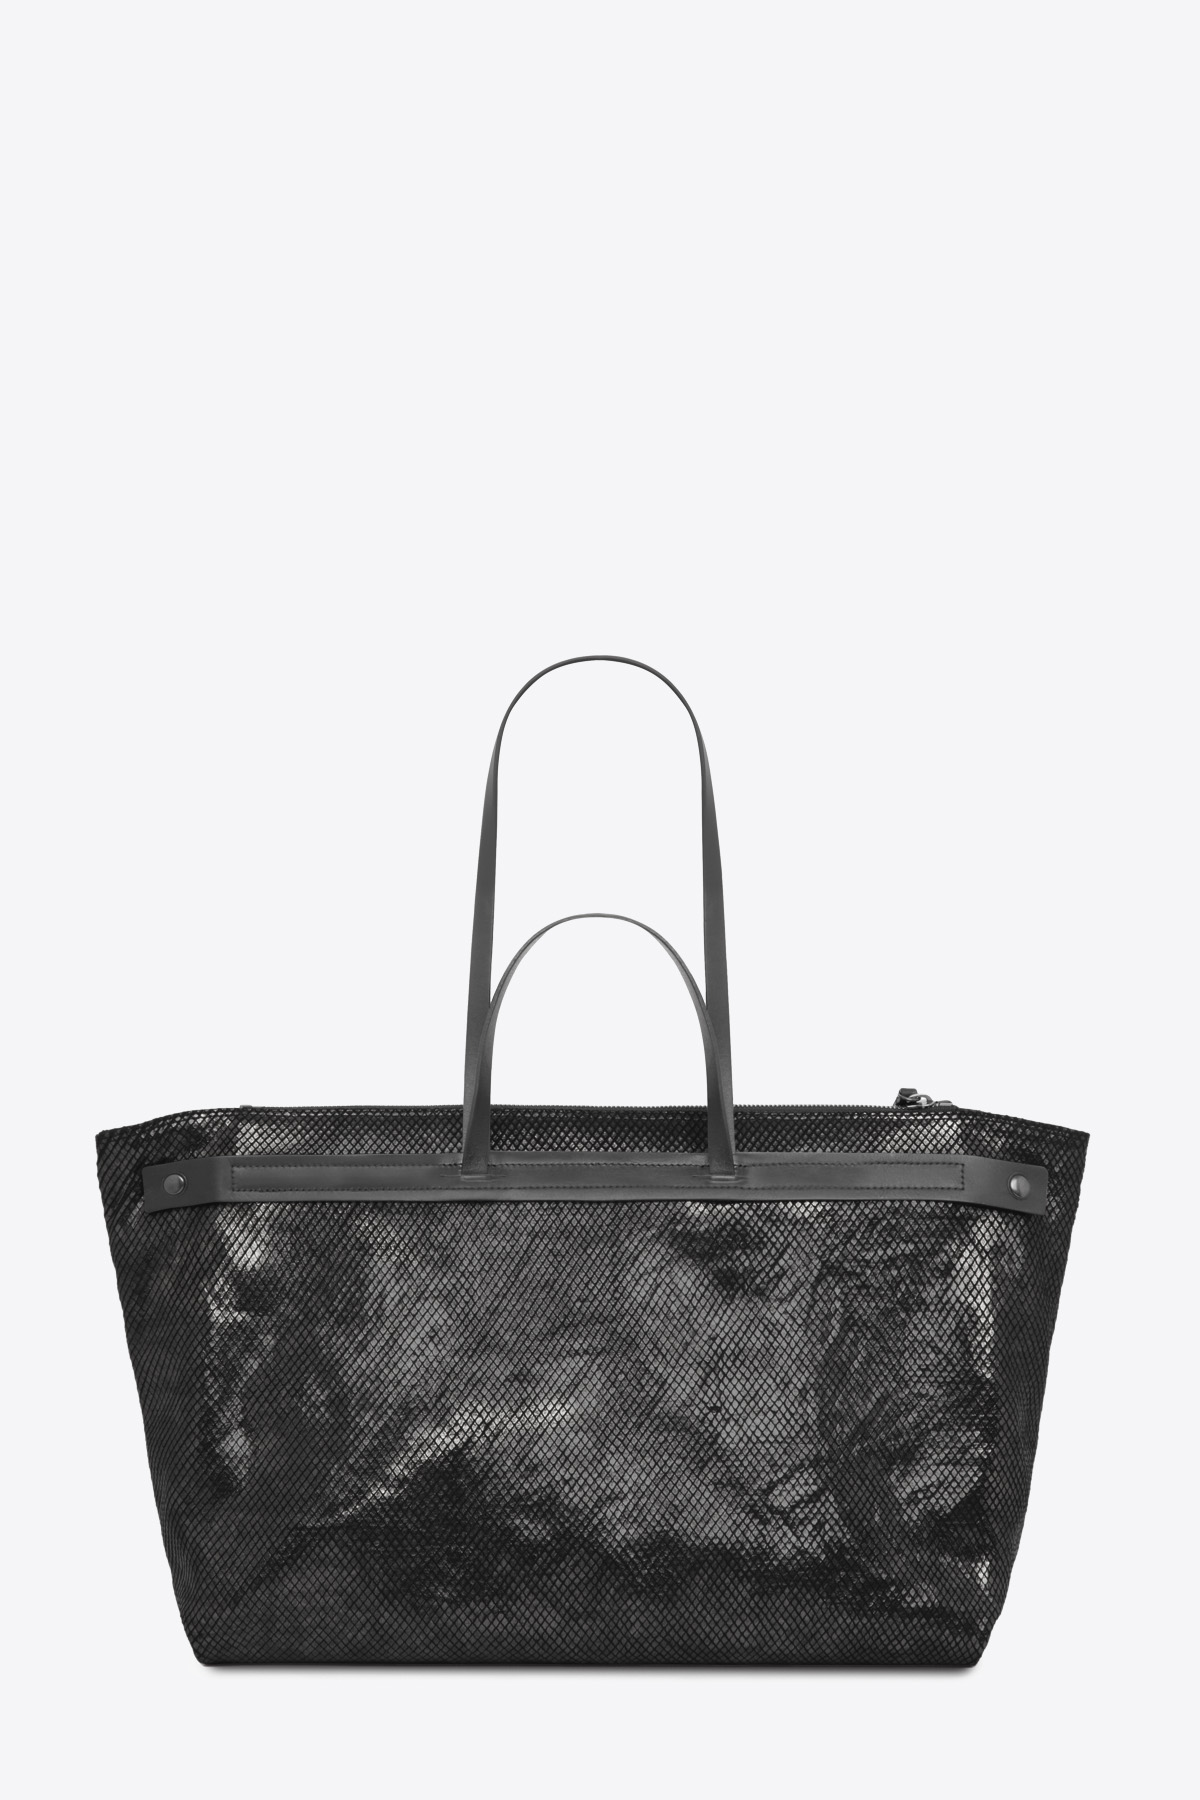 dclr007l-tote-a23-backsnakeblack-back2